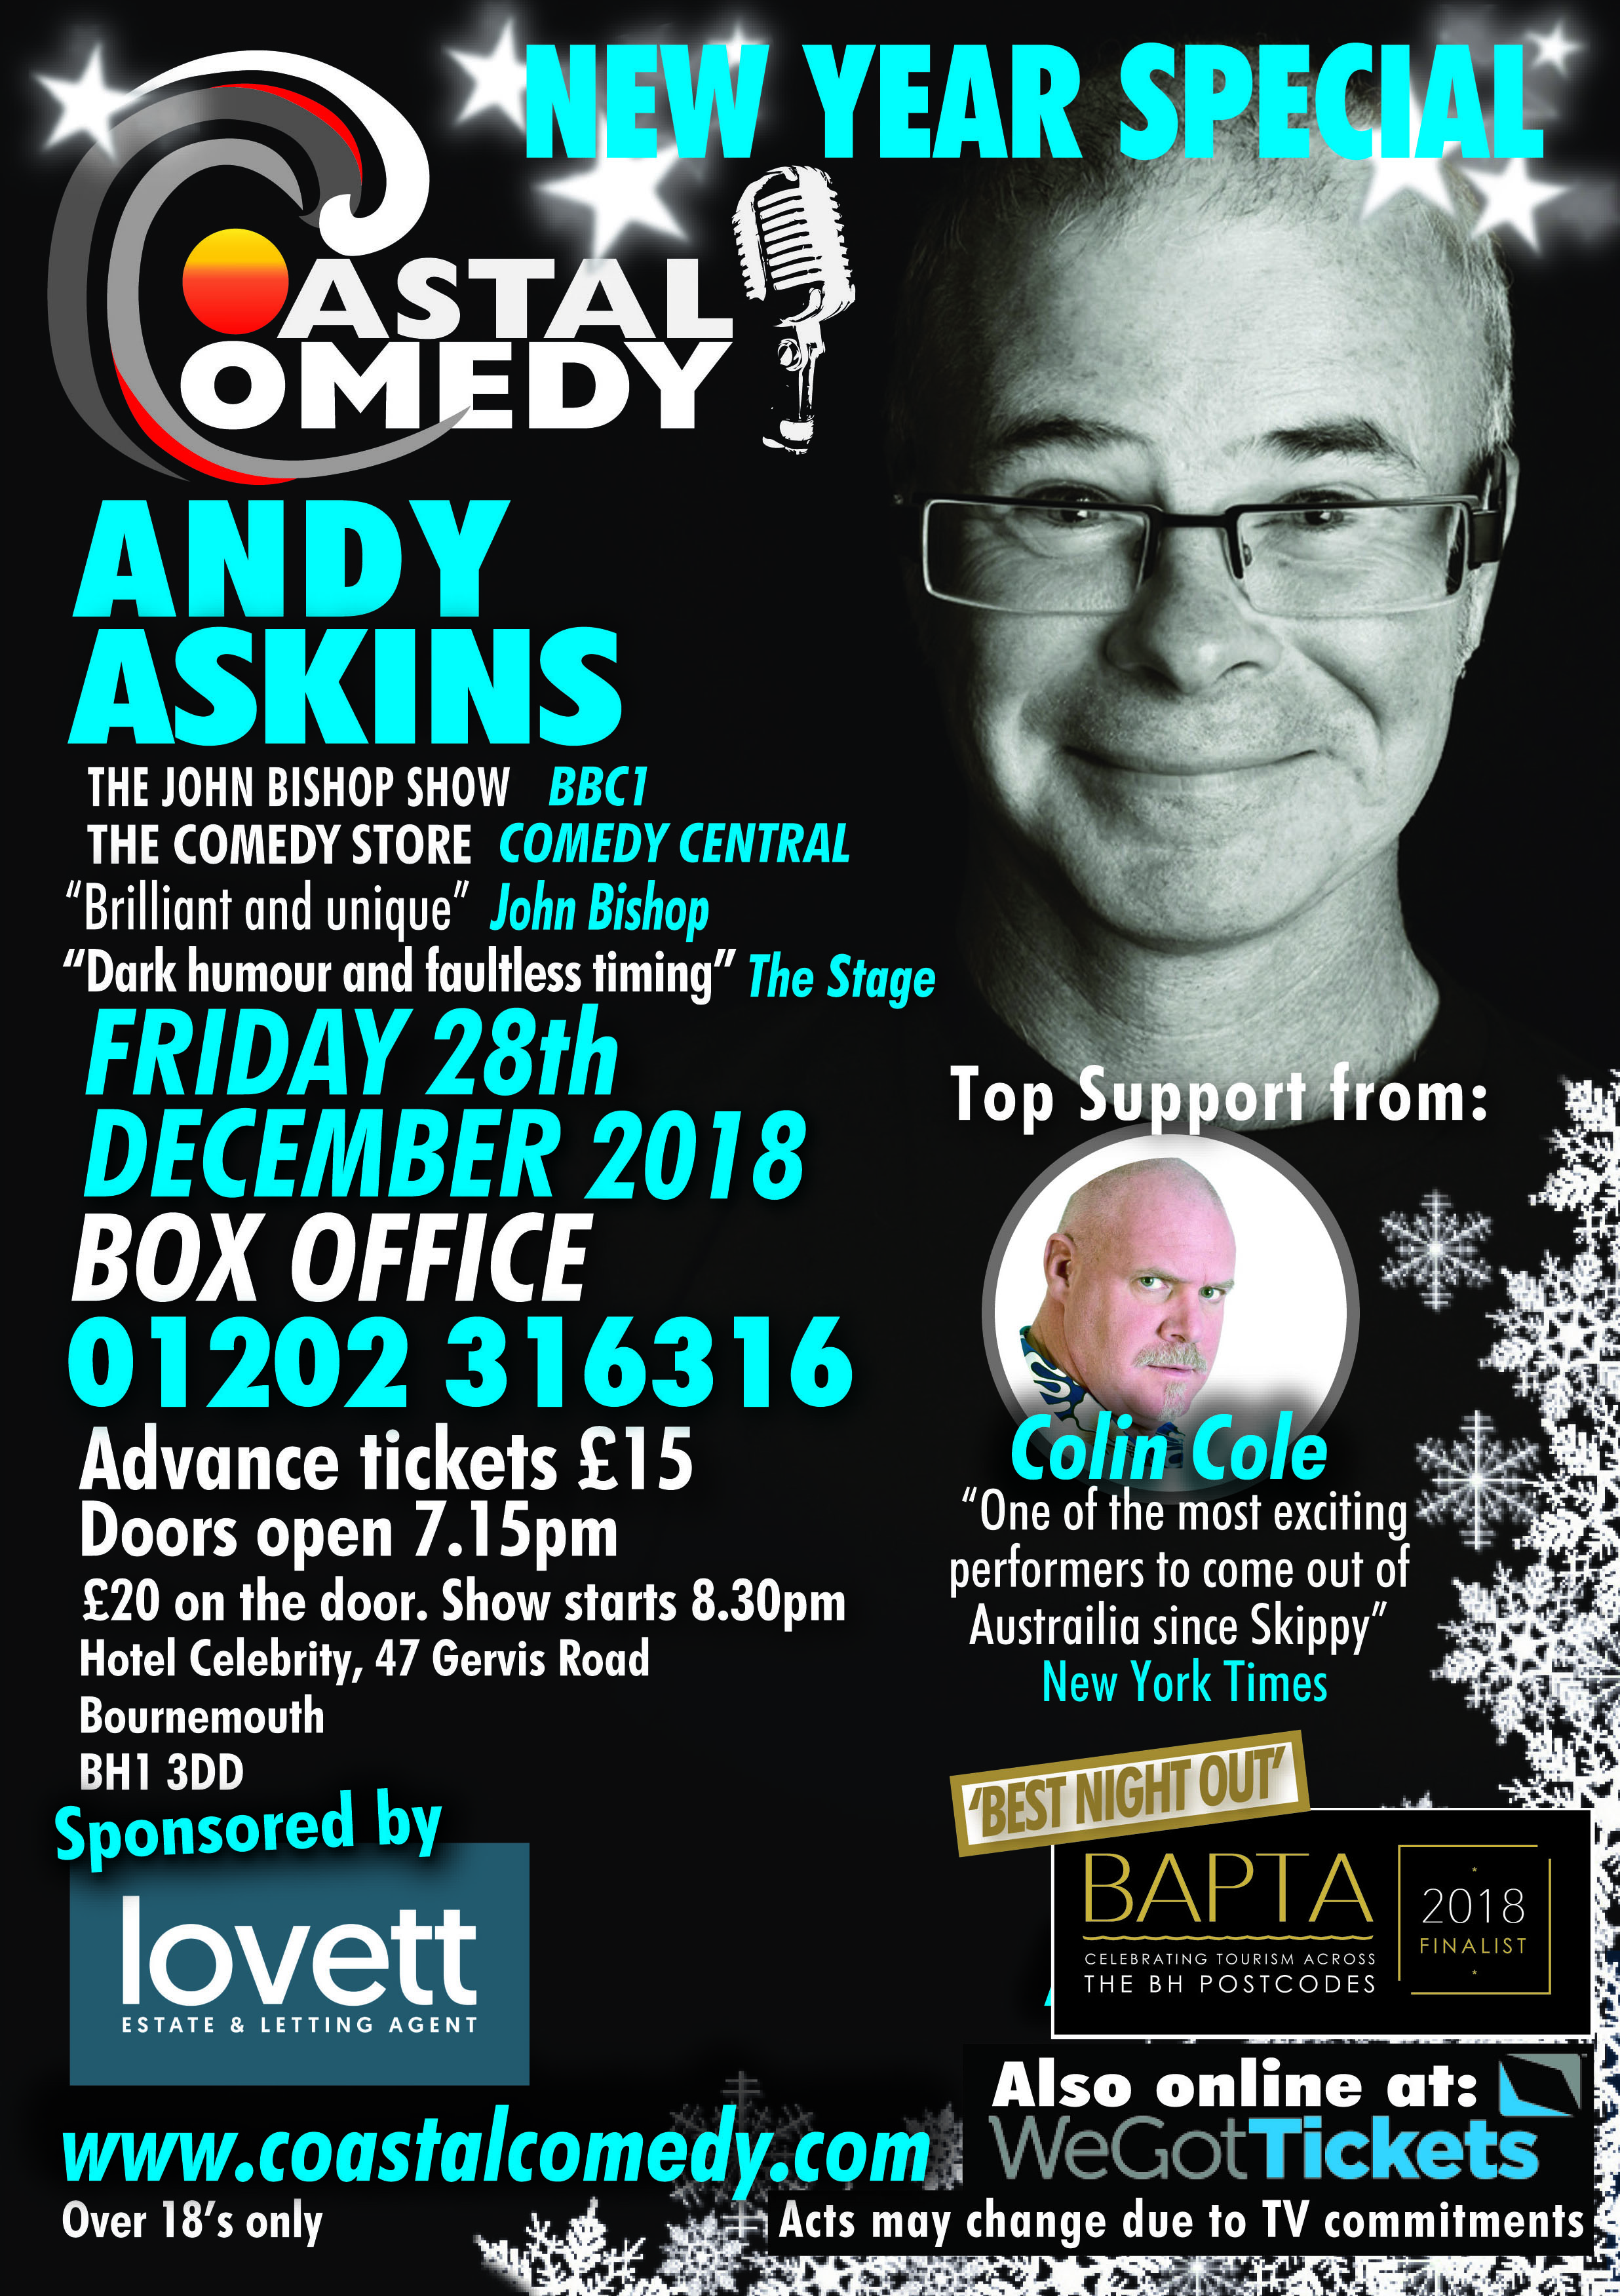 Bournemouth, New year celebration, 2018, coastal, dorset, hotel celebrity, comedy, best night out, LOL, pavillion, comic, stand-up, bournemouth, what's on, jokes, funny, lol,comic, comedian,